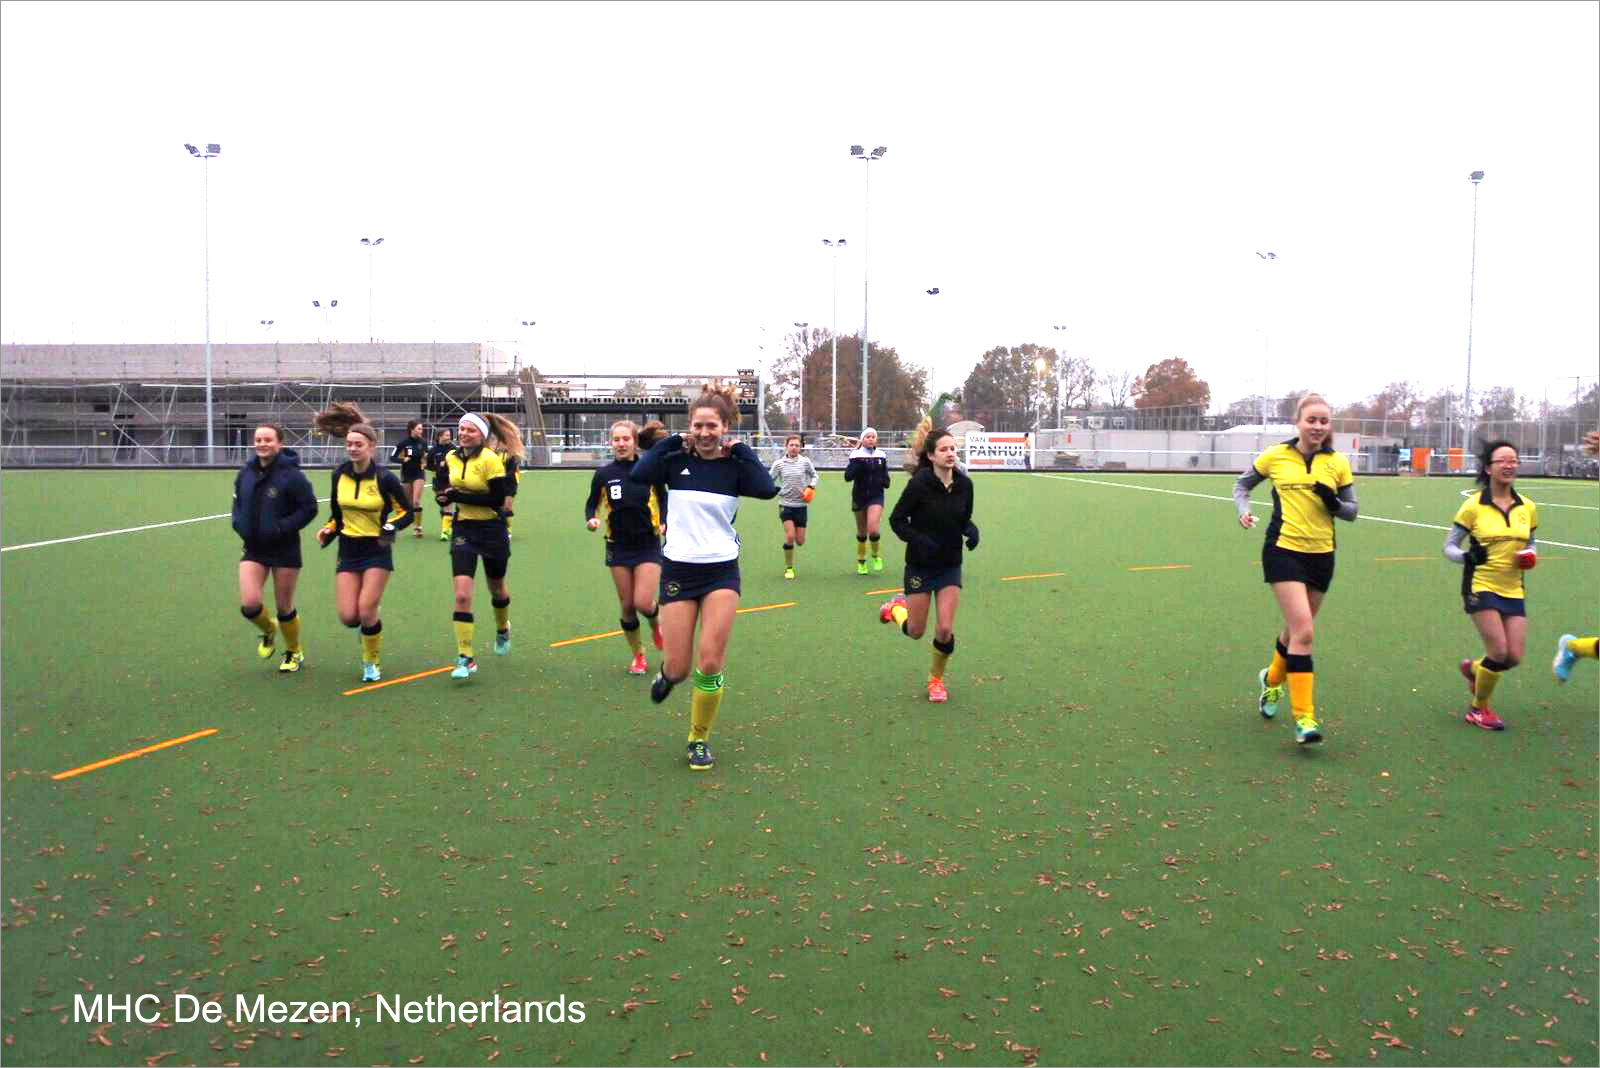 CCGrass hockey fields prove a winner in the Netherlands110